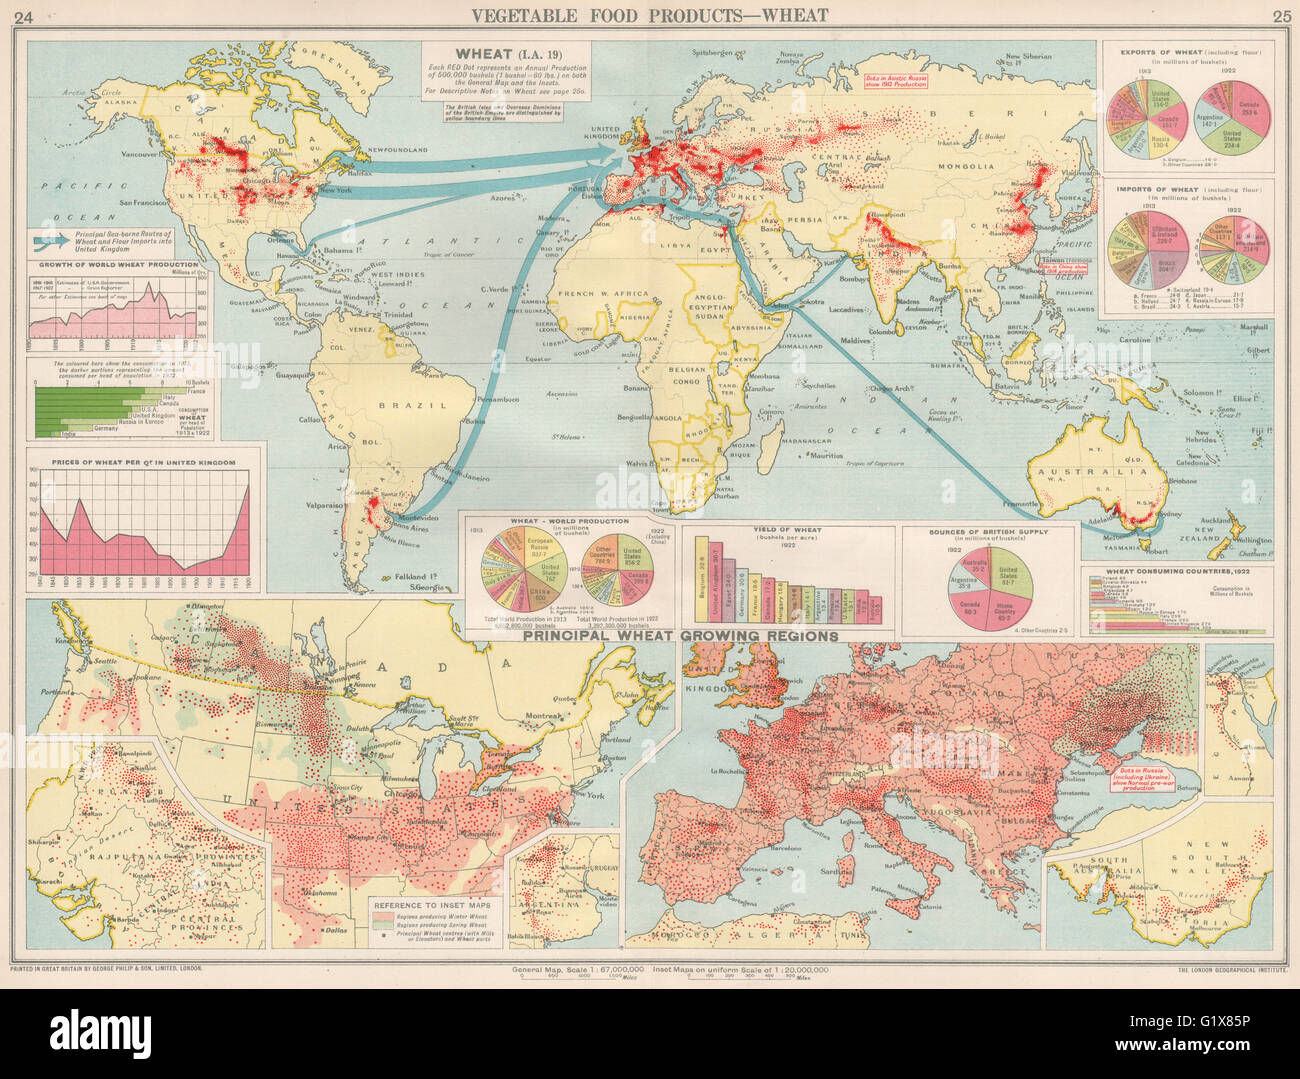 Map Of United States And Europe Stock Photos & Map Of United States ...